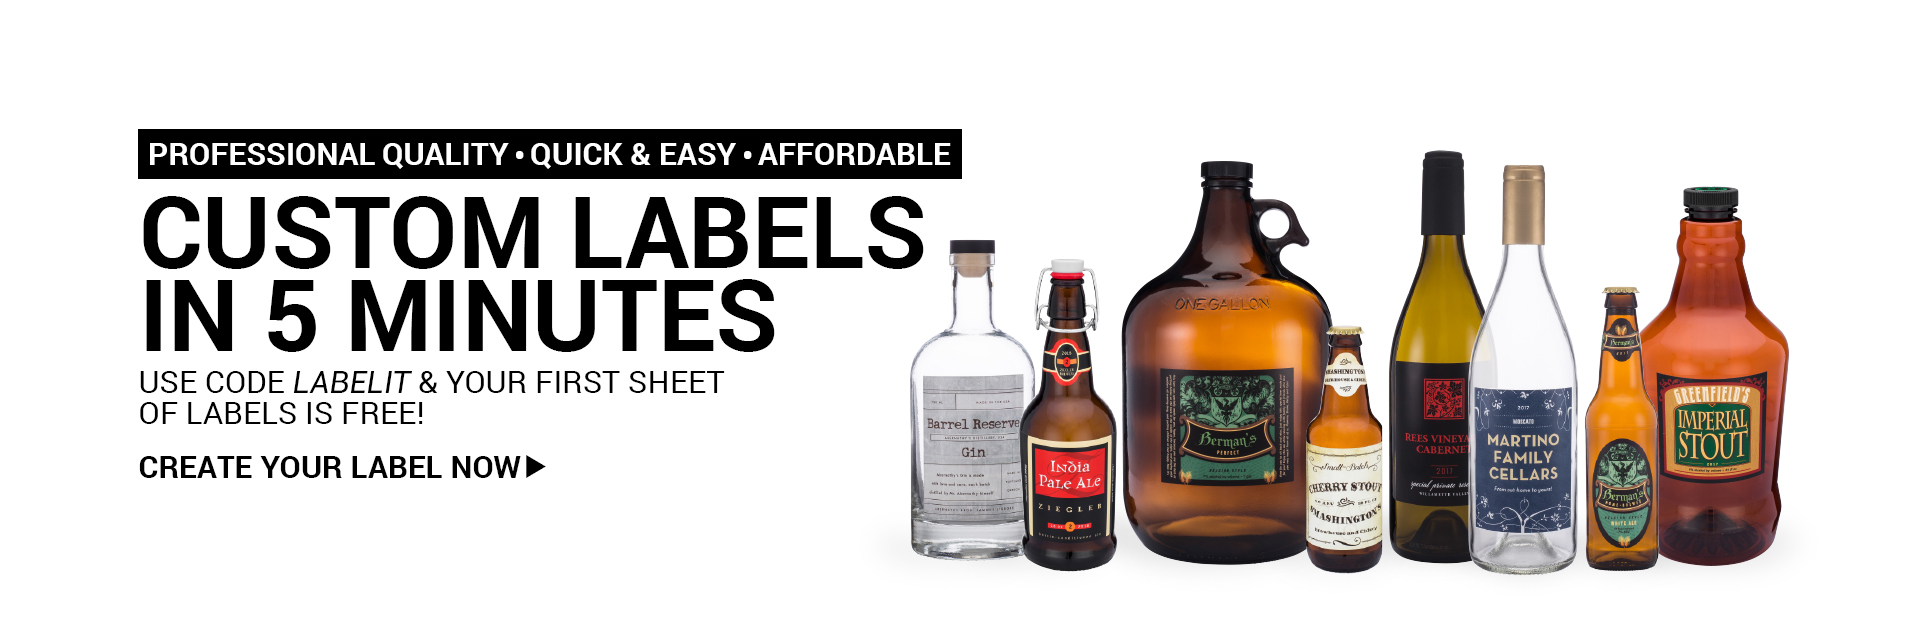 Custom Labels in 5 Minutes.  Use Code LABELIT & your first sheet of labels is free!